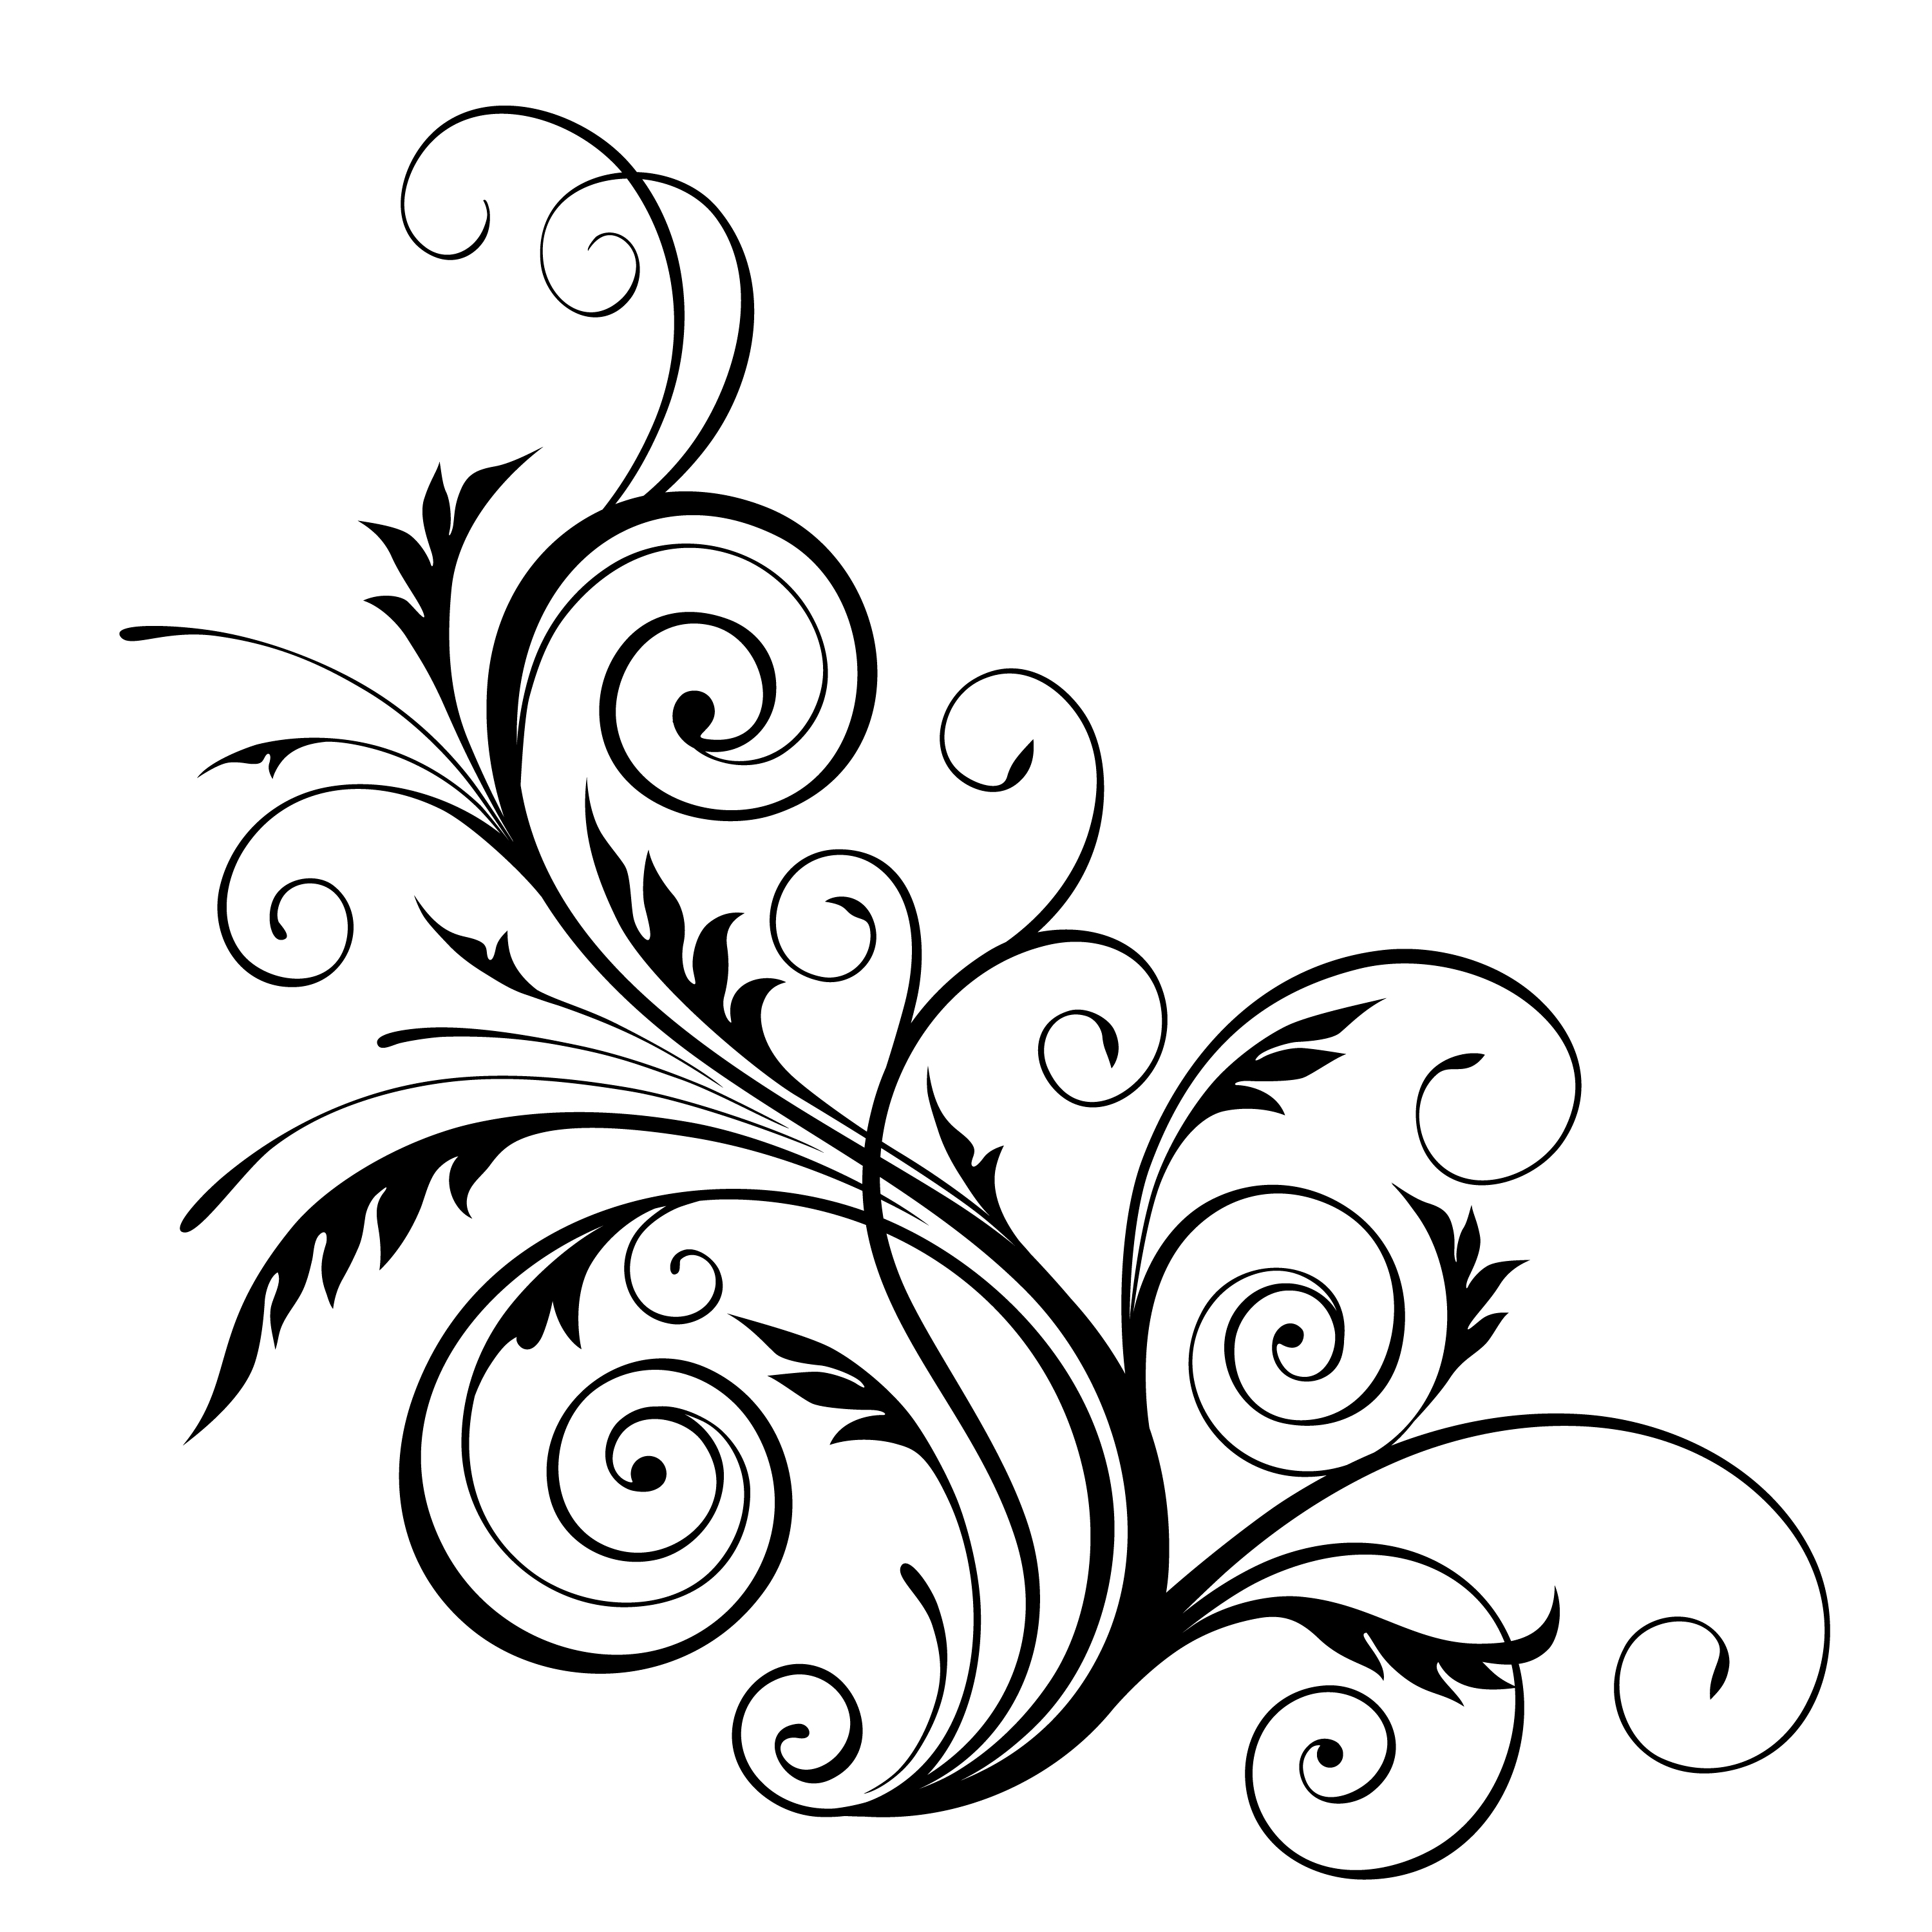 27 Free Wood Burning Pattern Ideas furthermore 326440672969806104 also About further 397583473329840885 further Scroll Saw Trivet Hot Pad Pattern. on leather work patterns for free